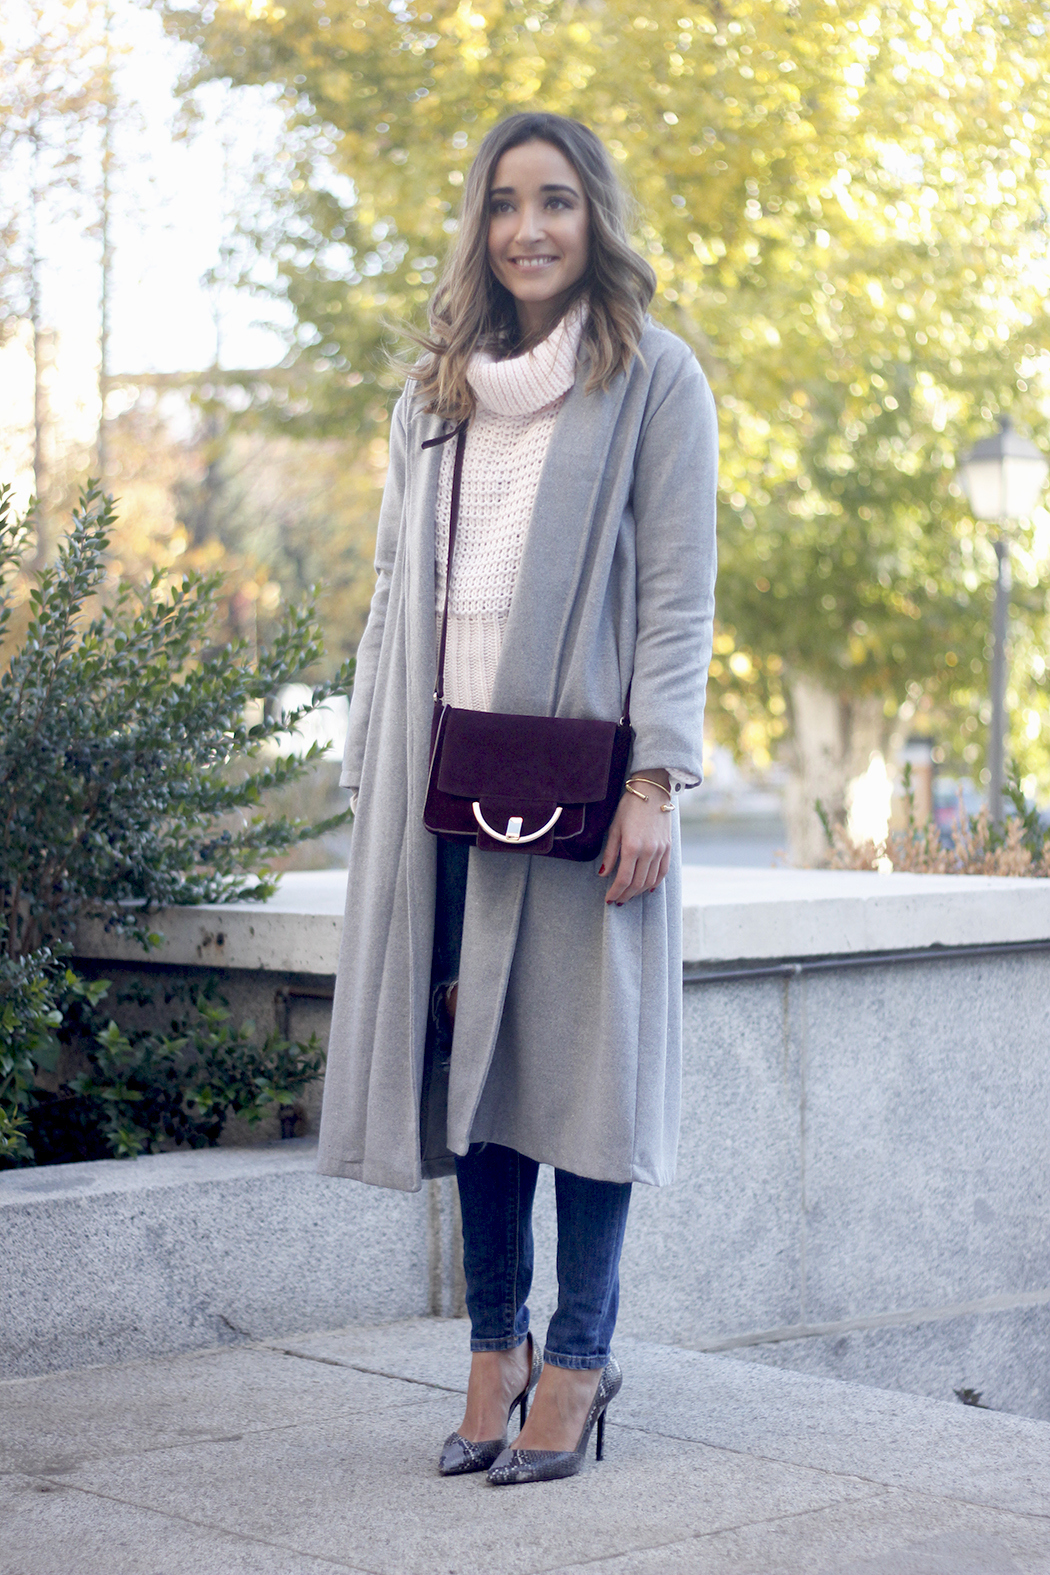 Grey coat with pink sweater jeans burgundy purse uterqüe outfit streetstyle05